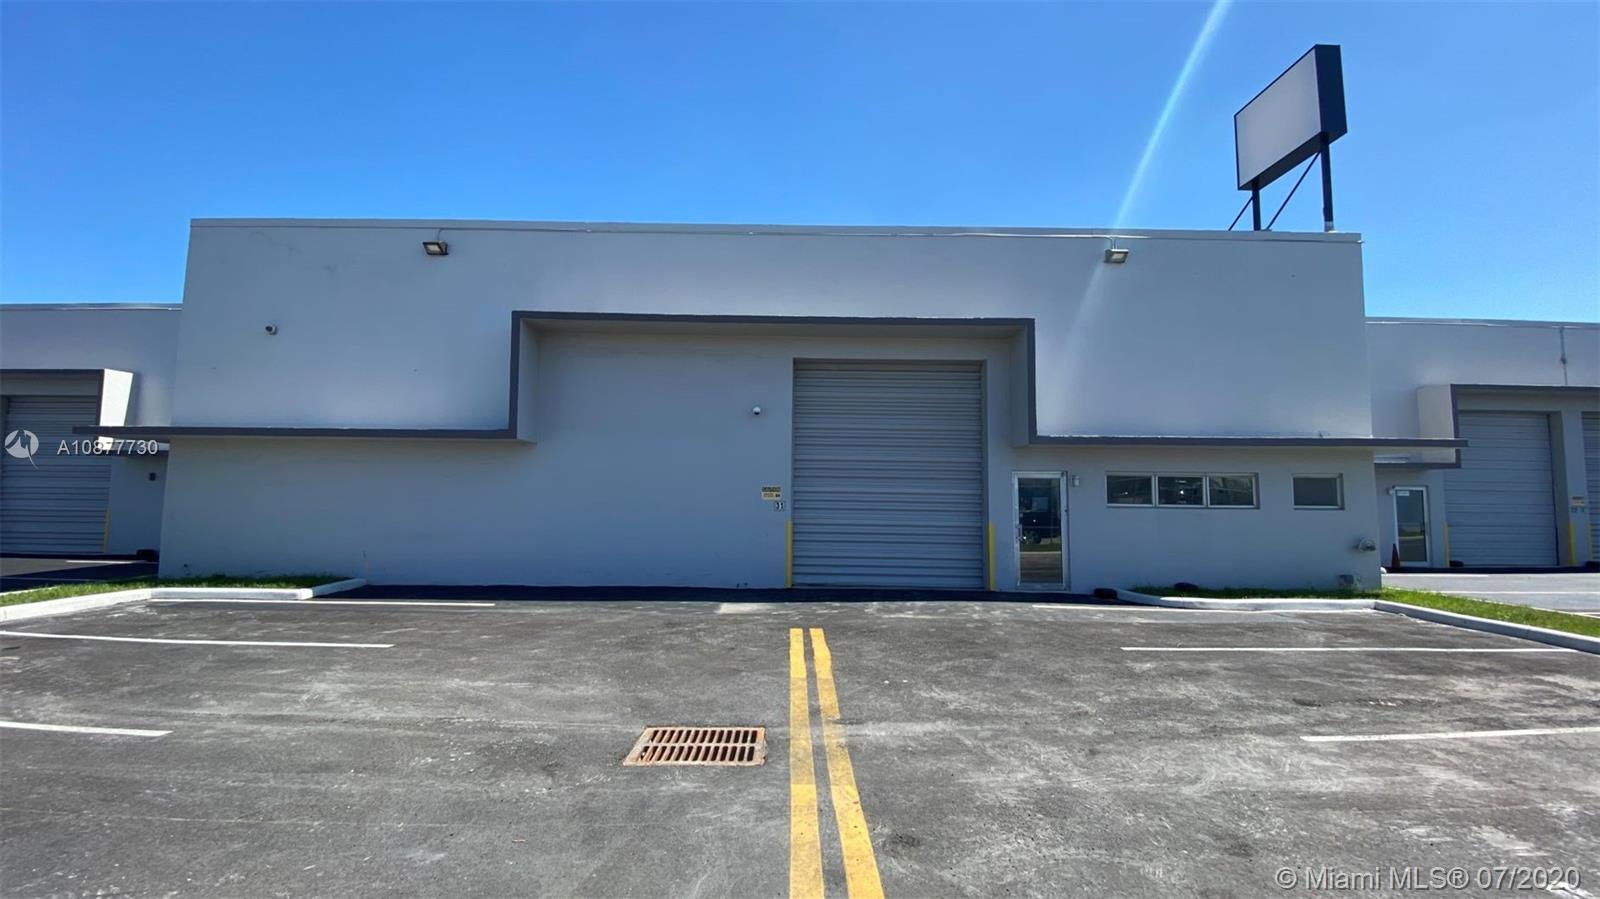 image #1 of property, 7370 Nw 43rd St